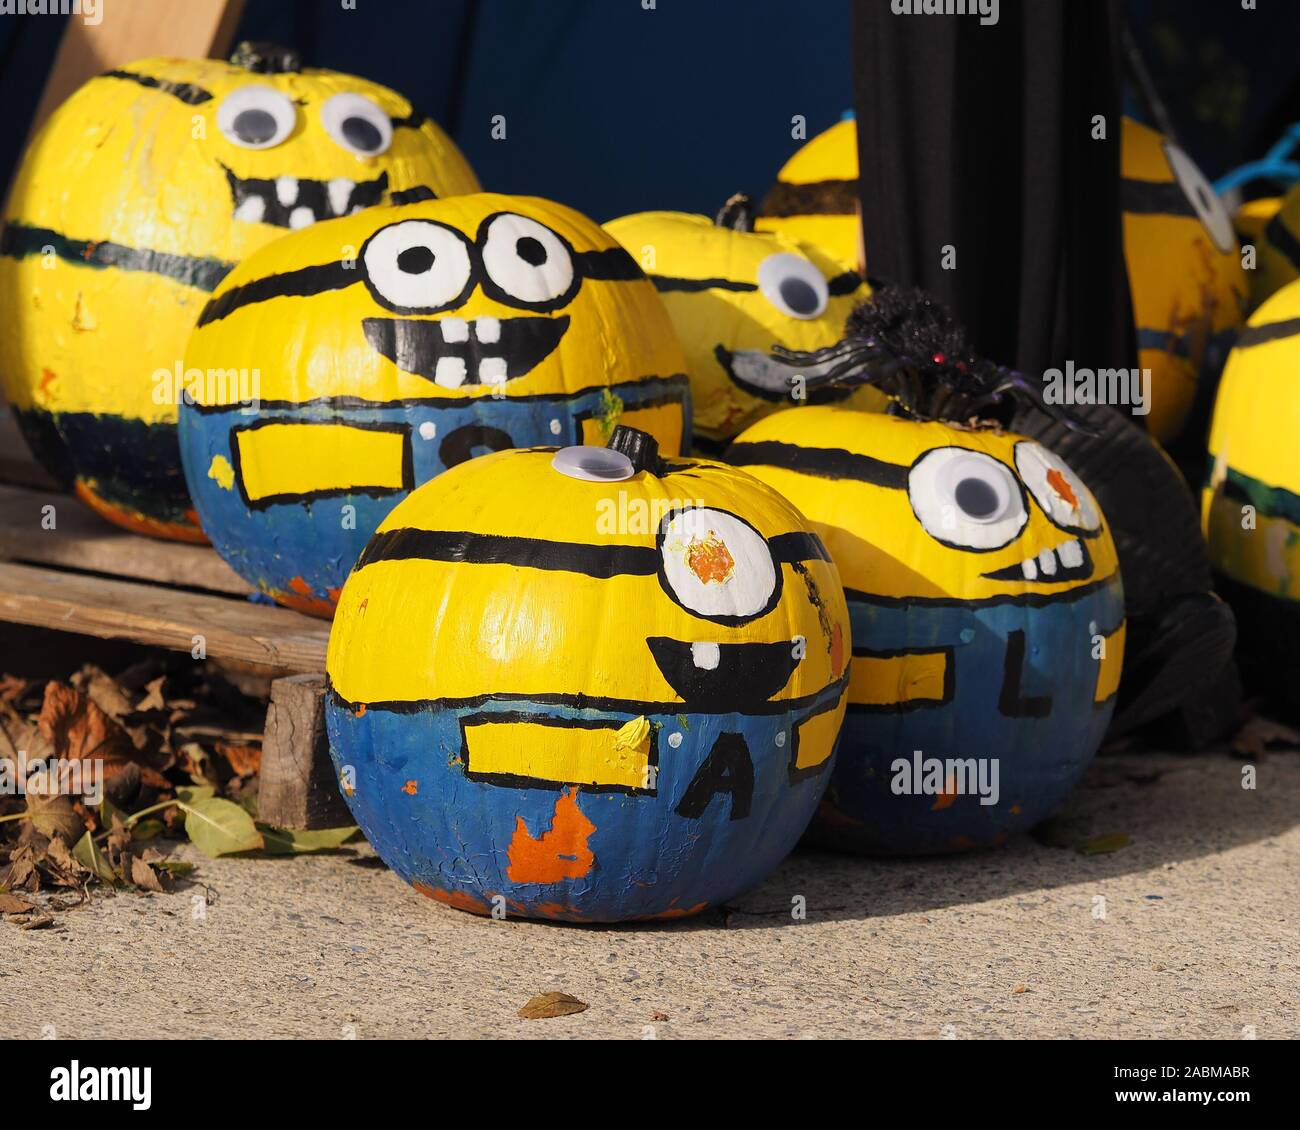 Pumpkins Painted As Minions From Despicable Me In Halloween Scarecrow Exhibit In New Inn Tipperary Ireland Stock Photo Alamy